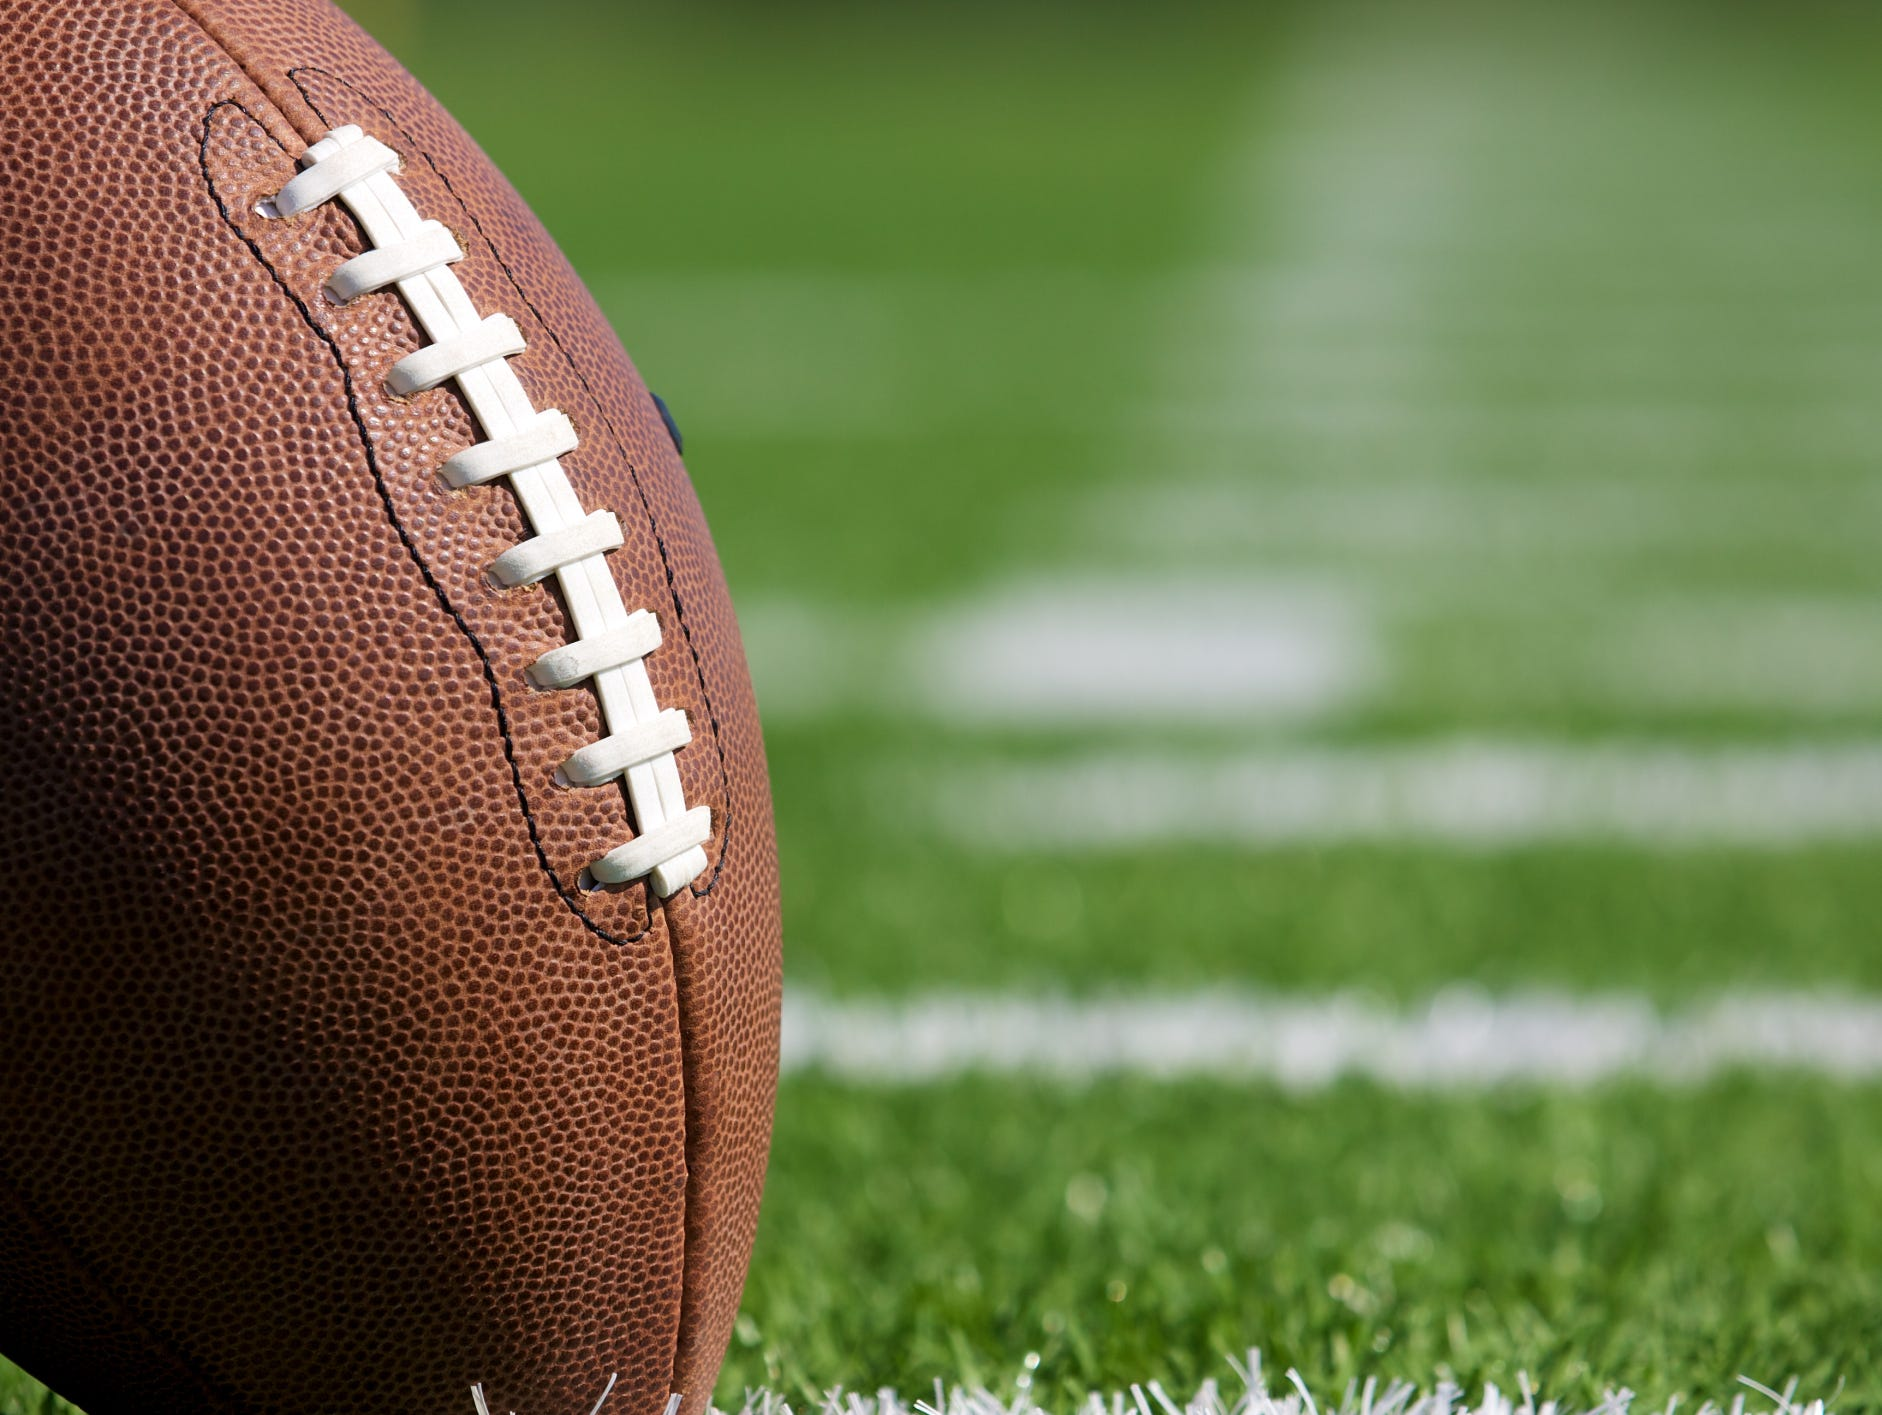 Contribute to our scoring updates each week by tweeting to @LSJsports with the hashtag #mipreps.